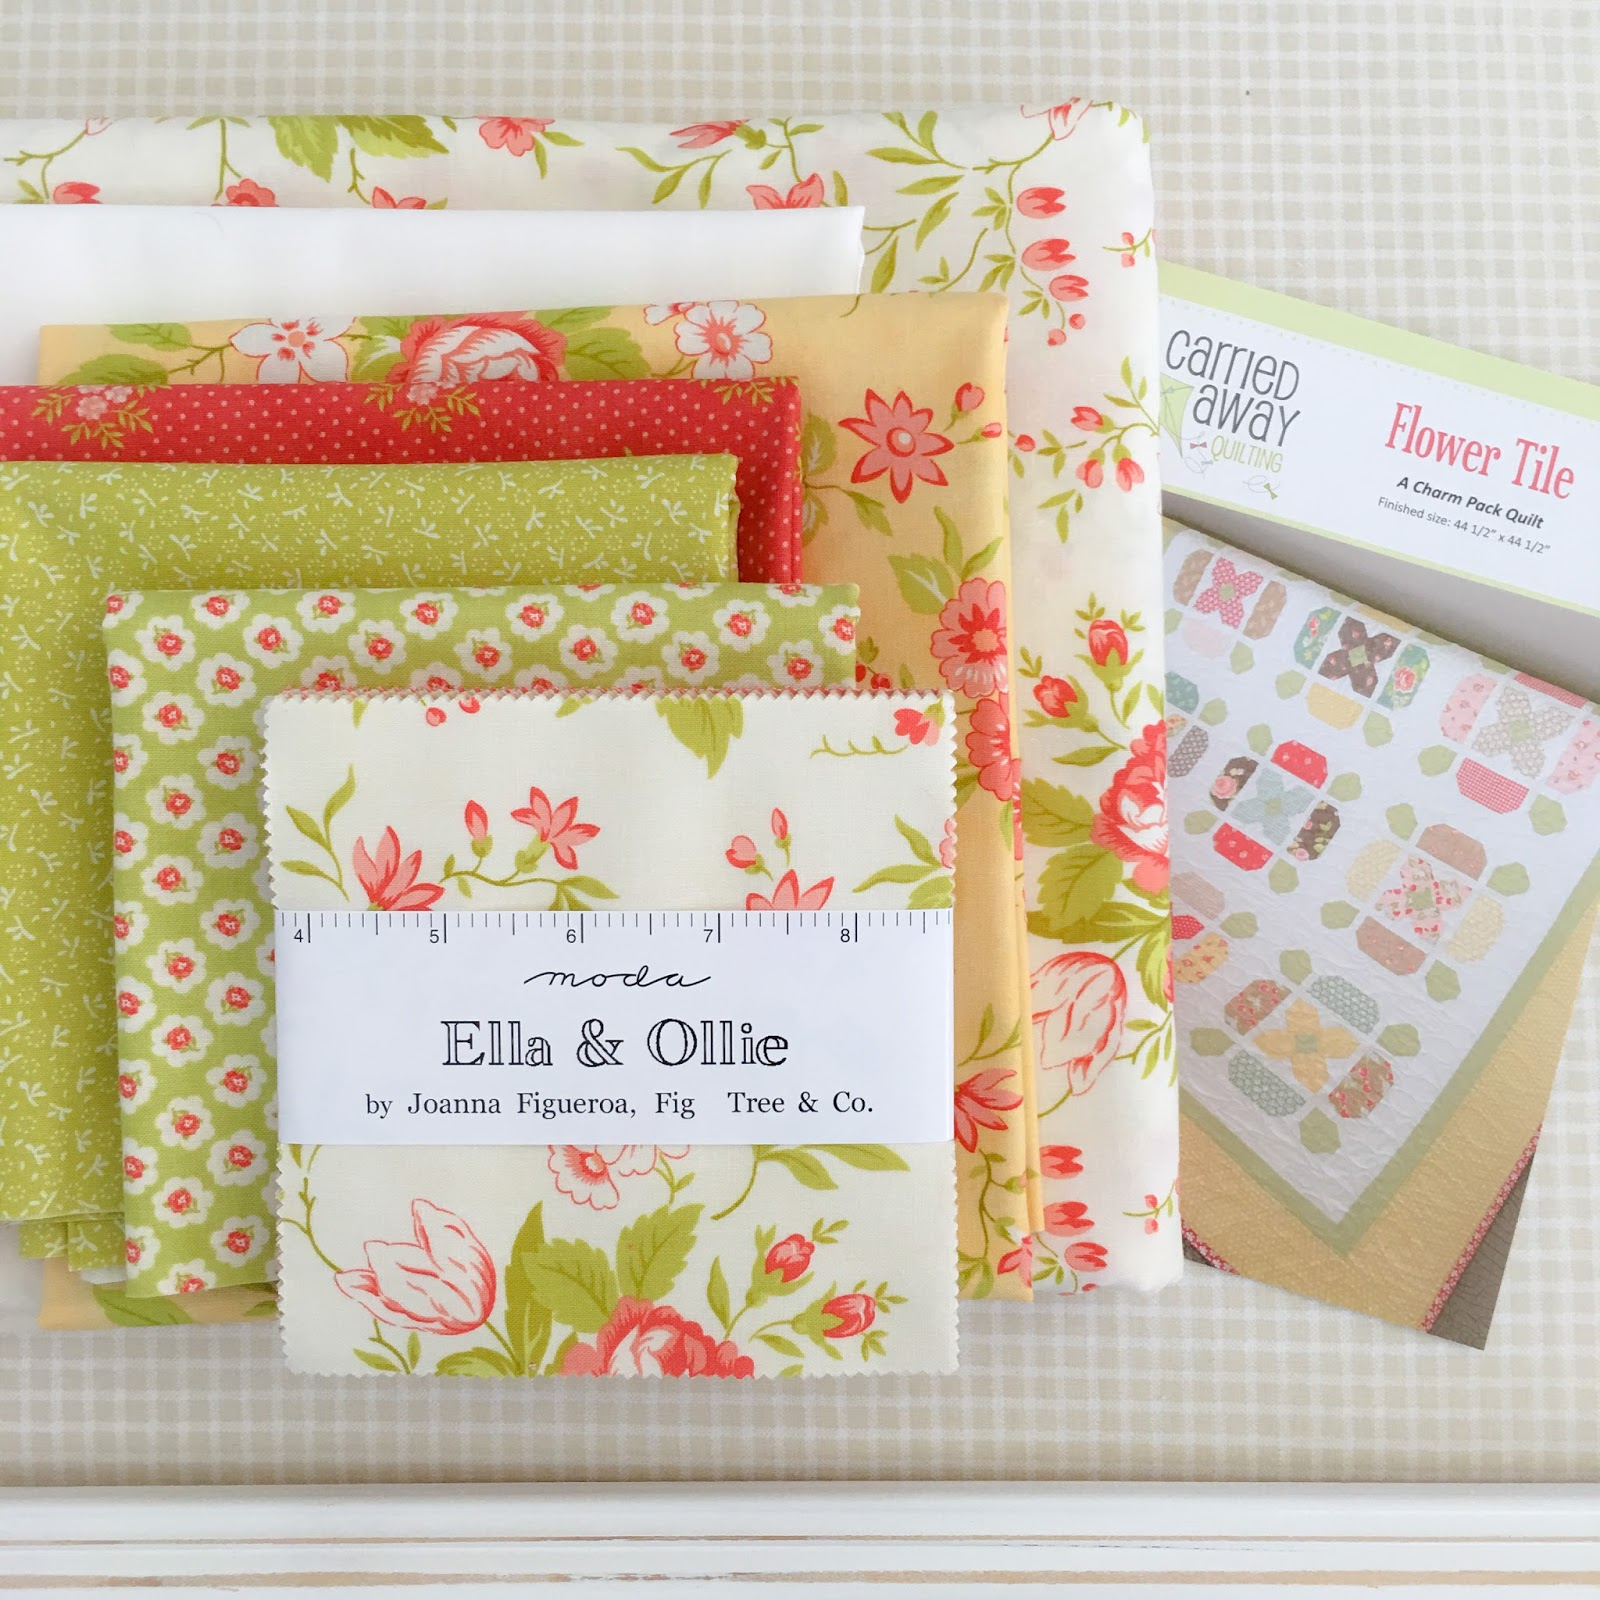 Flower Tile  Quilt Kit with Ella /& Ollie Moda Fabric by Fig Tree